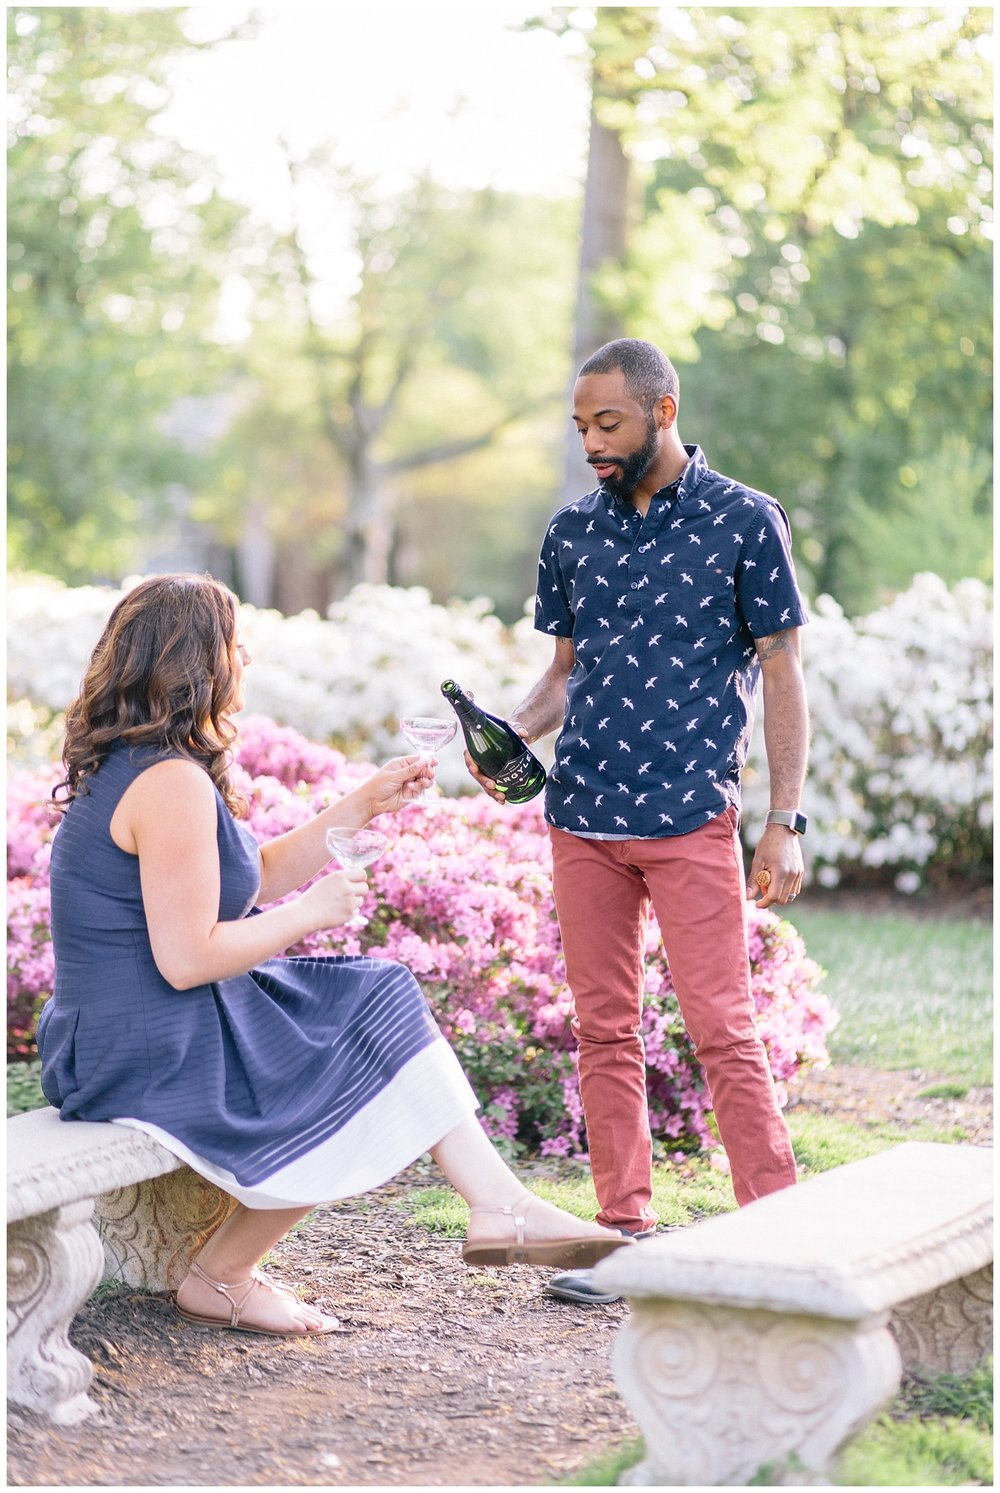 emily-belson-photography-sherwood-gardens-engagement-14.jpg